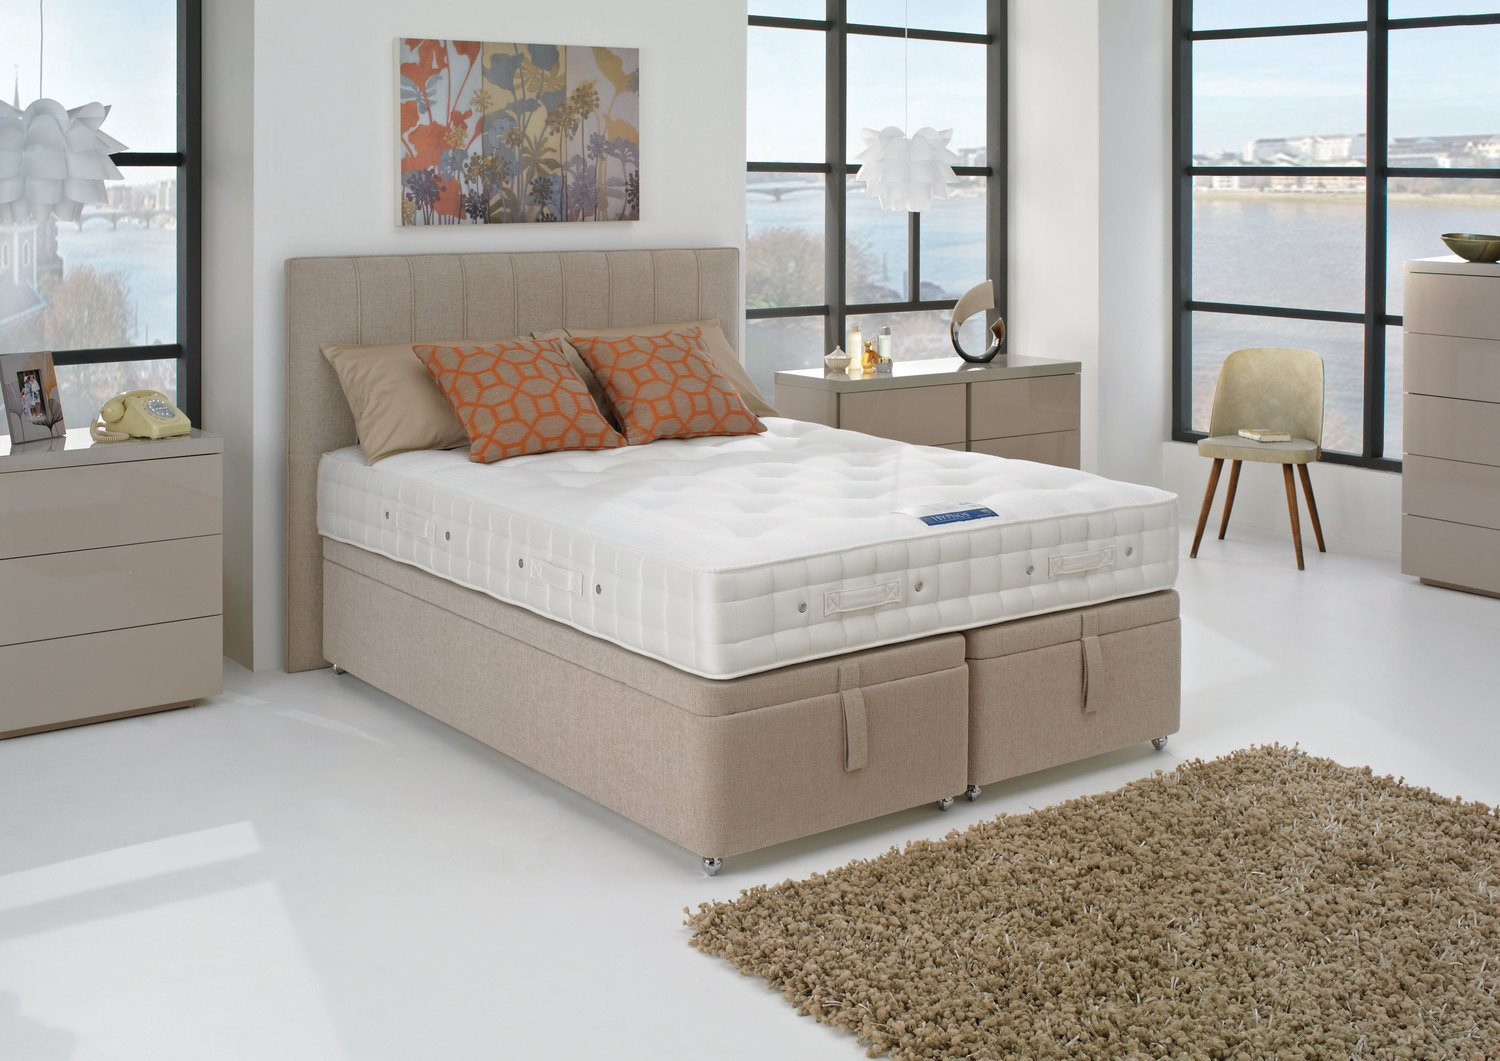 Hypnos orthocare 8 divan bed firm from for Divan bed sheet